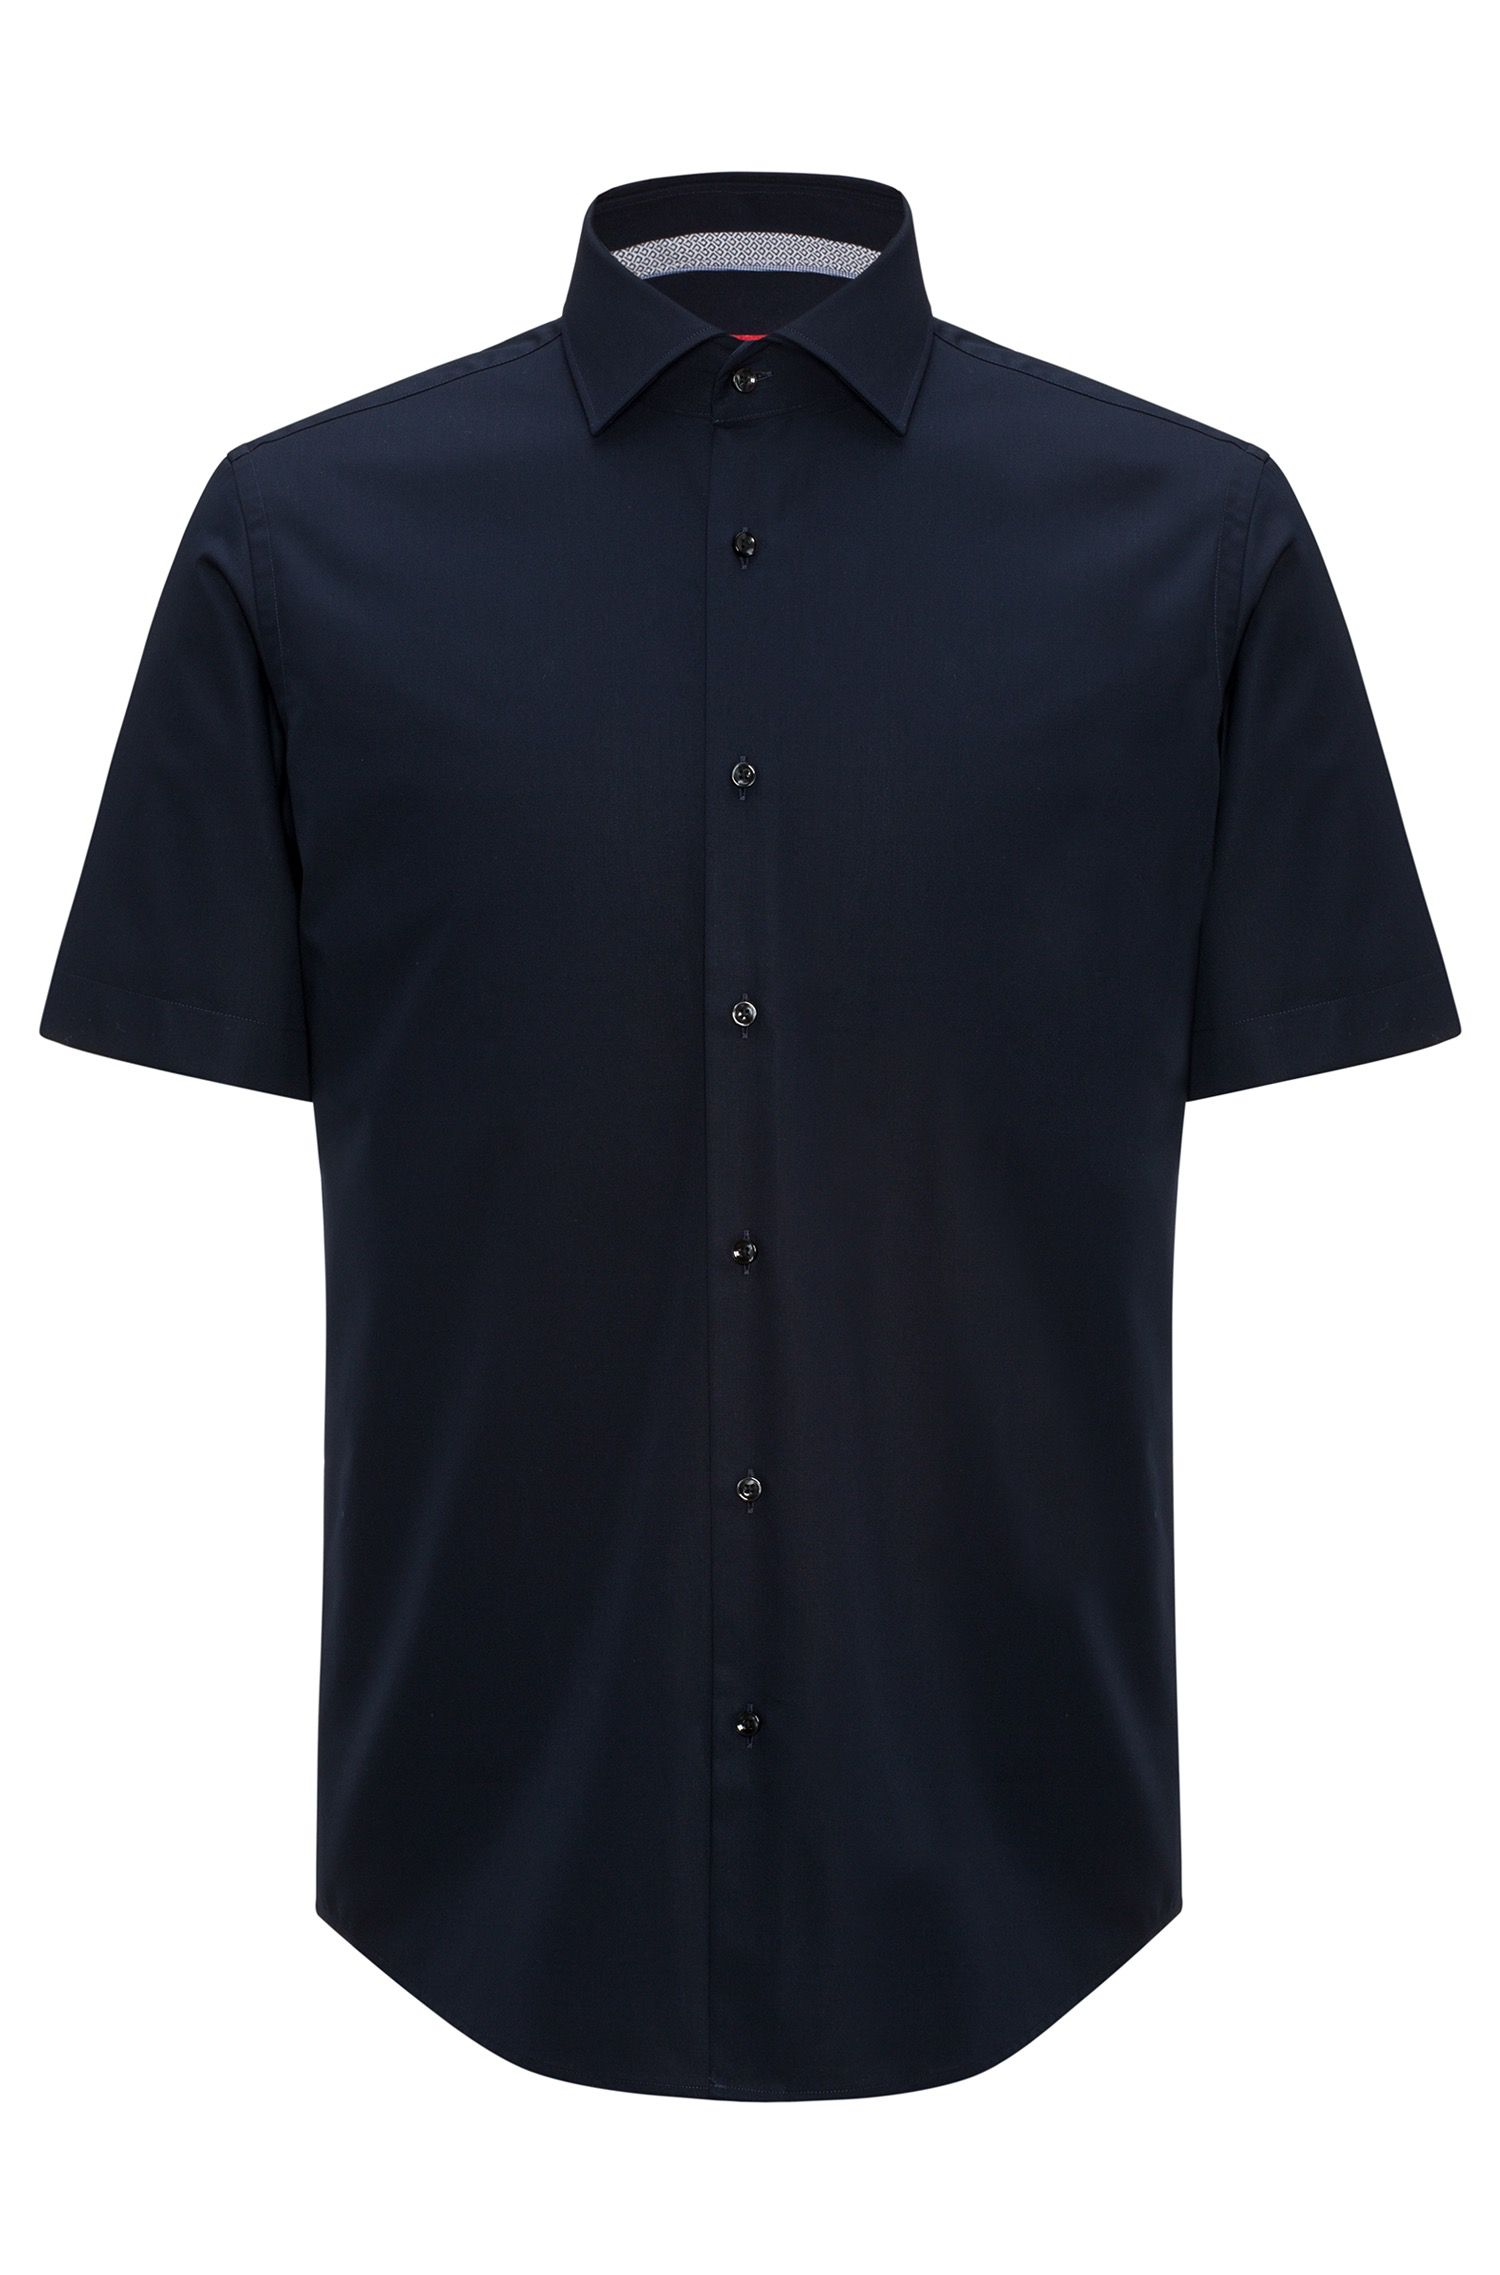 Regular-fit short-sleeved shirt in cotton poplin